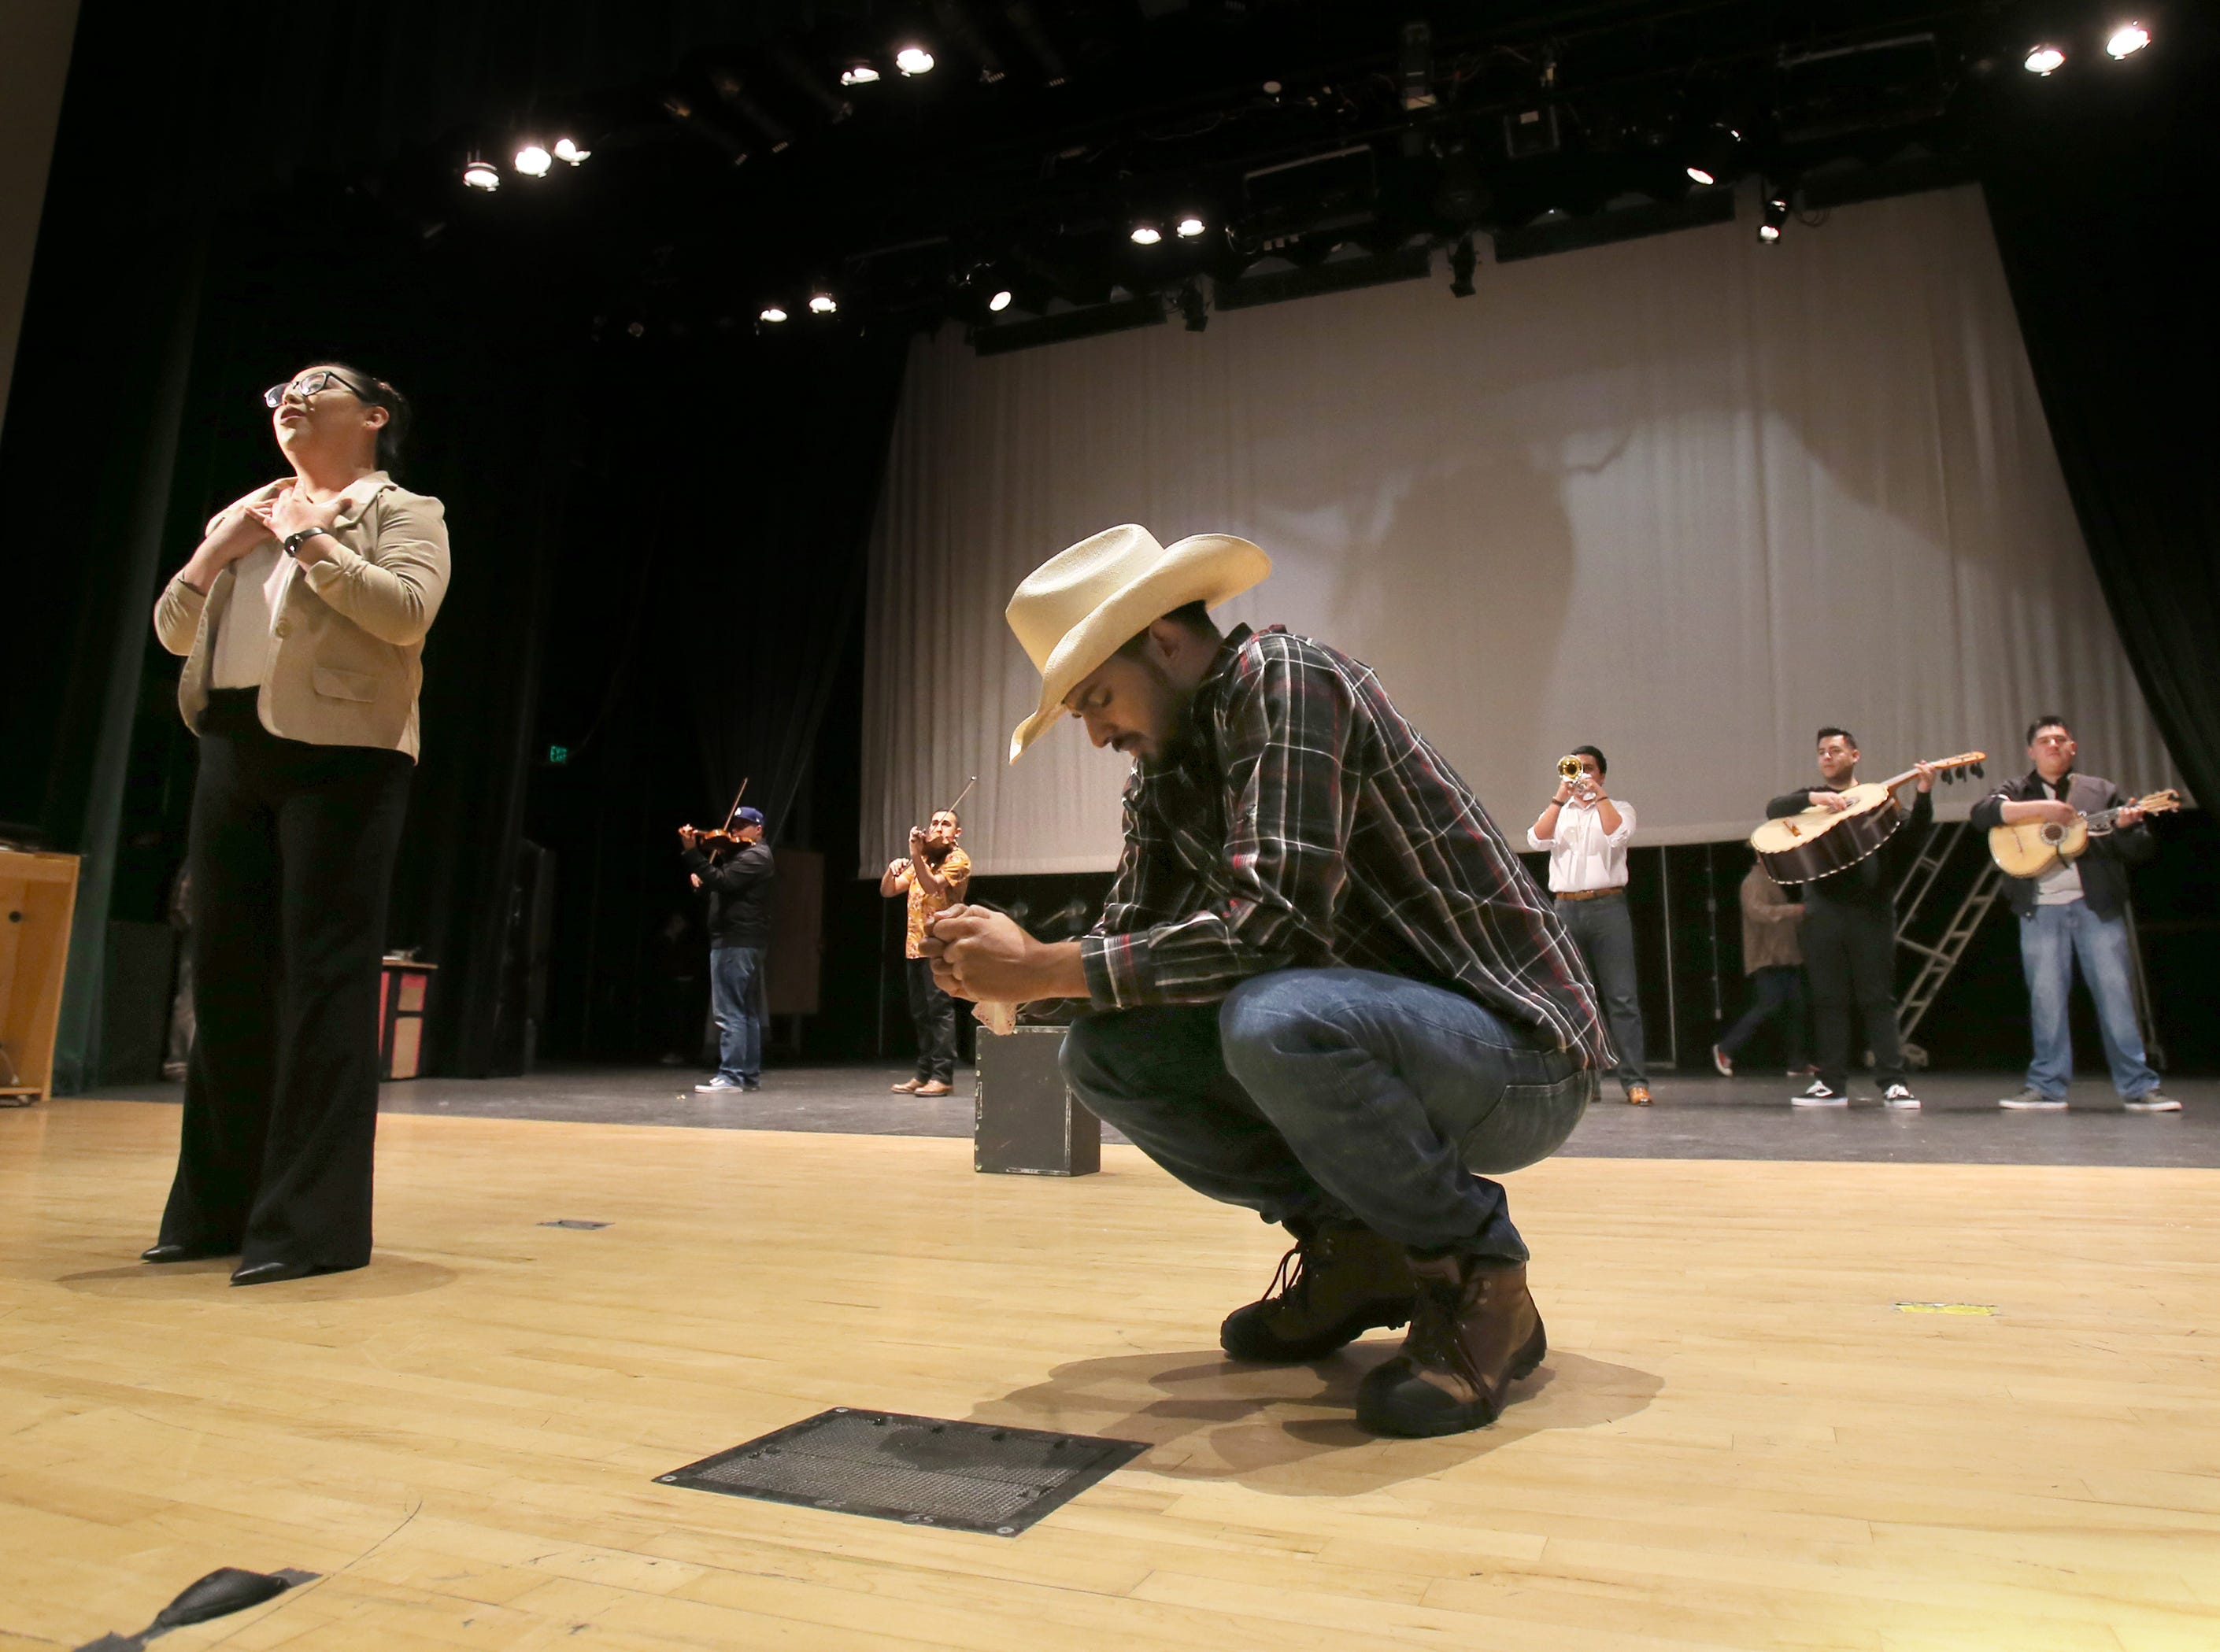 """Mariachi Aguilas De Oxnard's Alde Gonzalez performs one of the powerful songs from the mariachi opera """"El Bracero"""" with Jonathan Lopez during Wednesday's rehearsal. Lopez, who is from Ensenada, Mexico, plays the lead character Noe. The performance will be at Pacifica High in Oxnard on Saturday."""